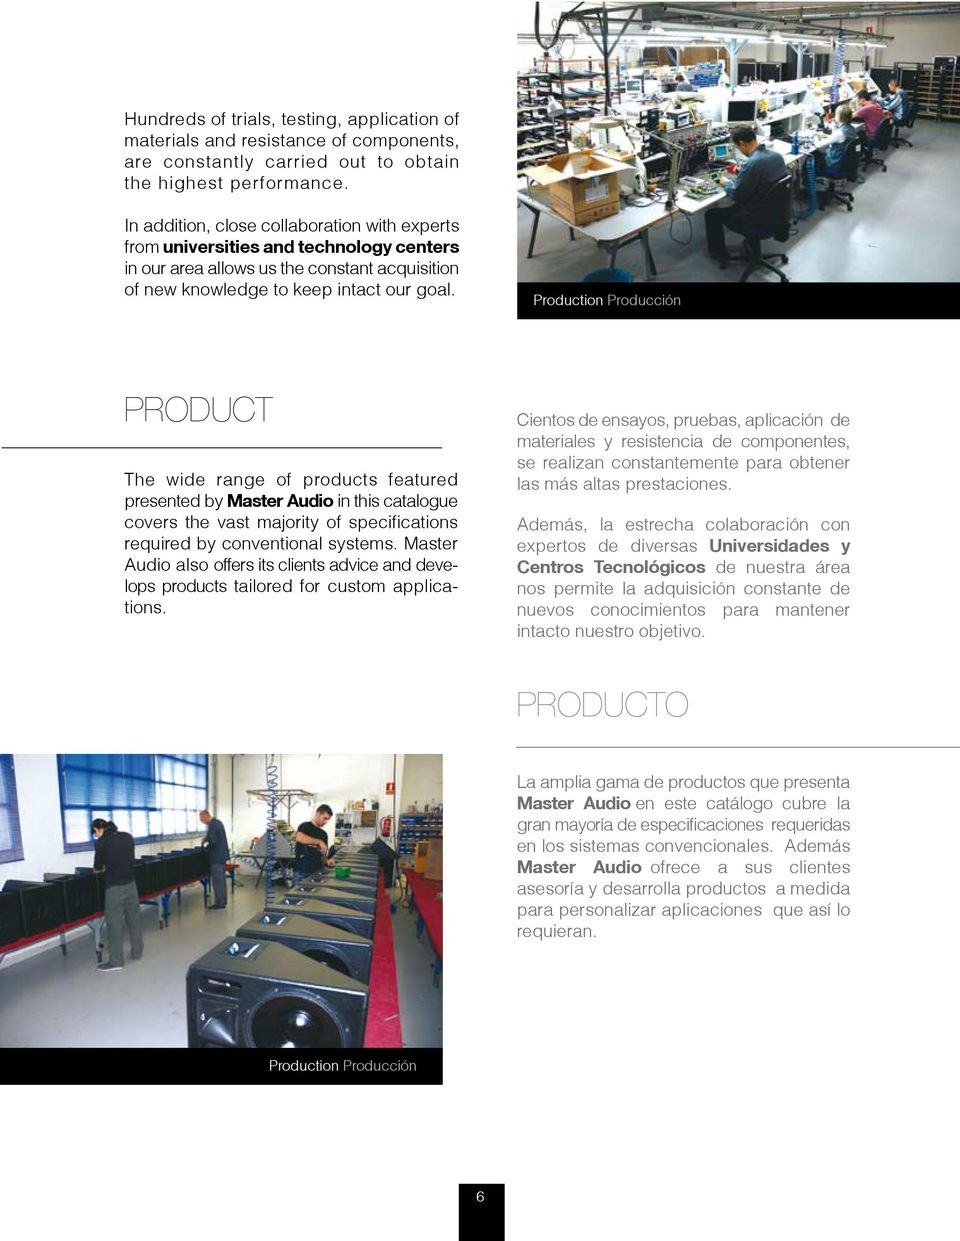 Production Producción PRODUCT The wide range of products featured presented by Master Audio in this catalogue covers the vast majority of specifications required by conventional systems.